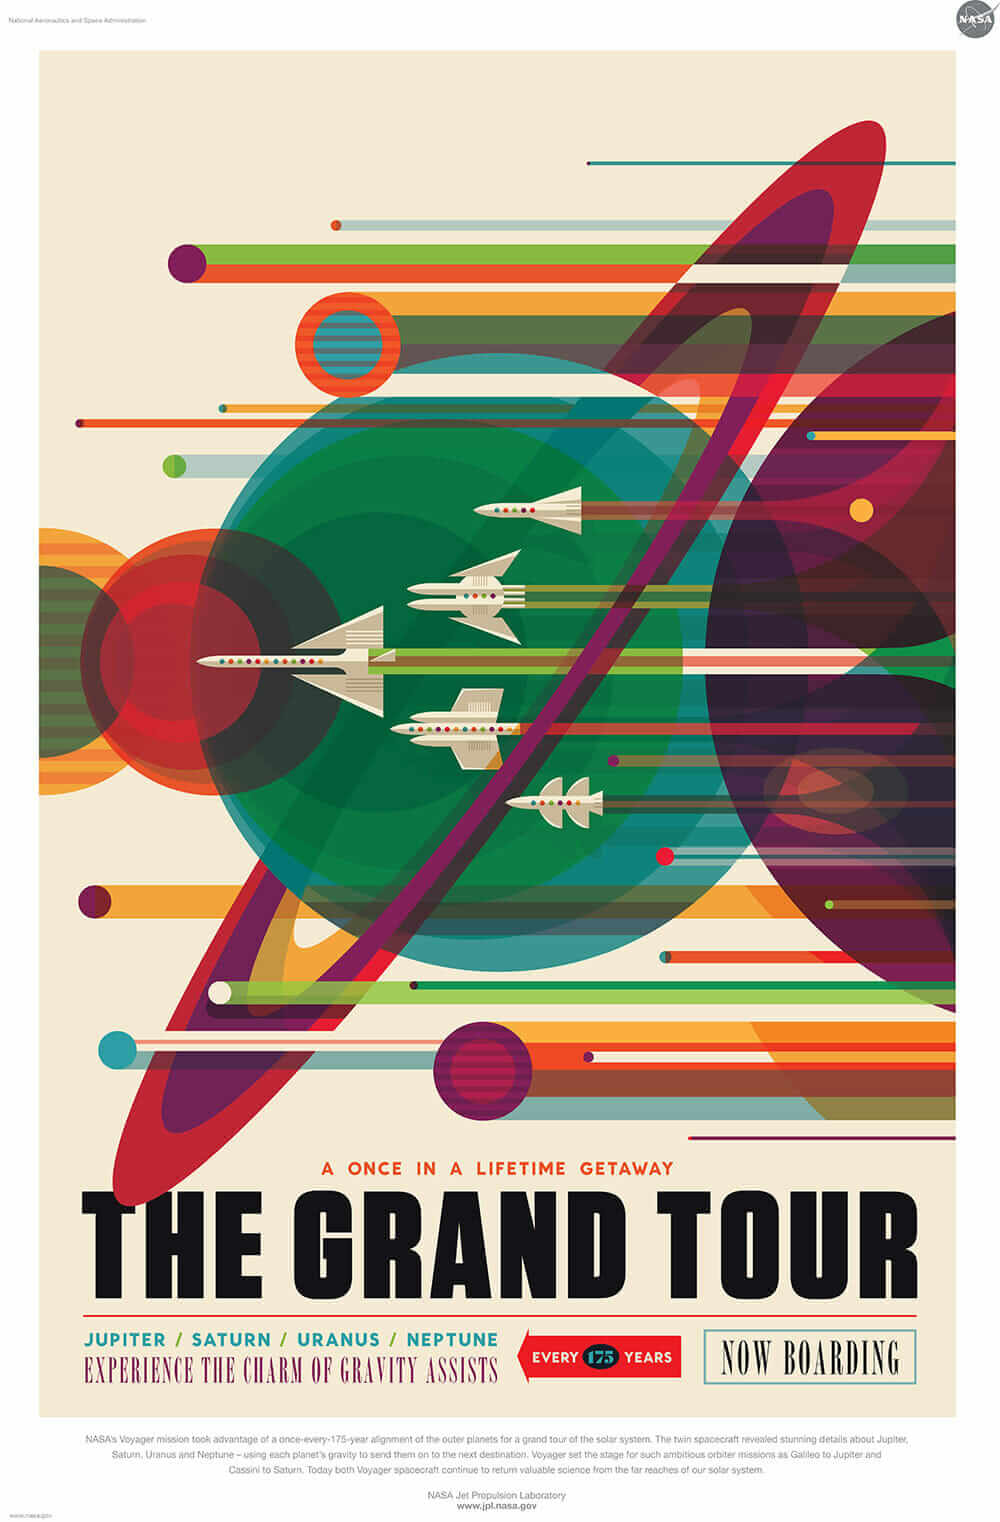 vintage style space poster